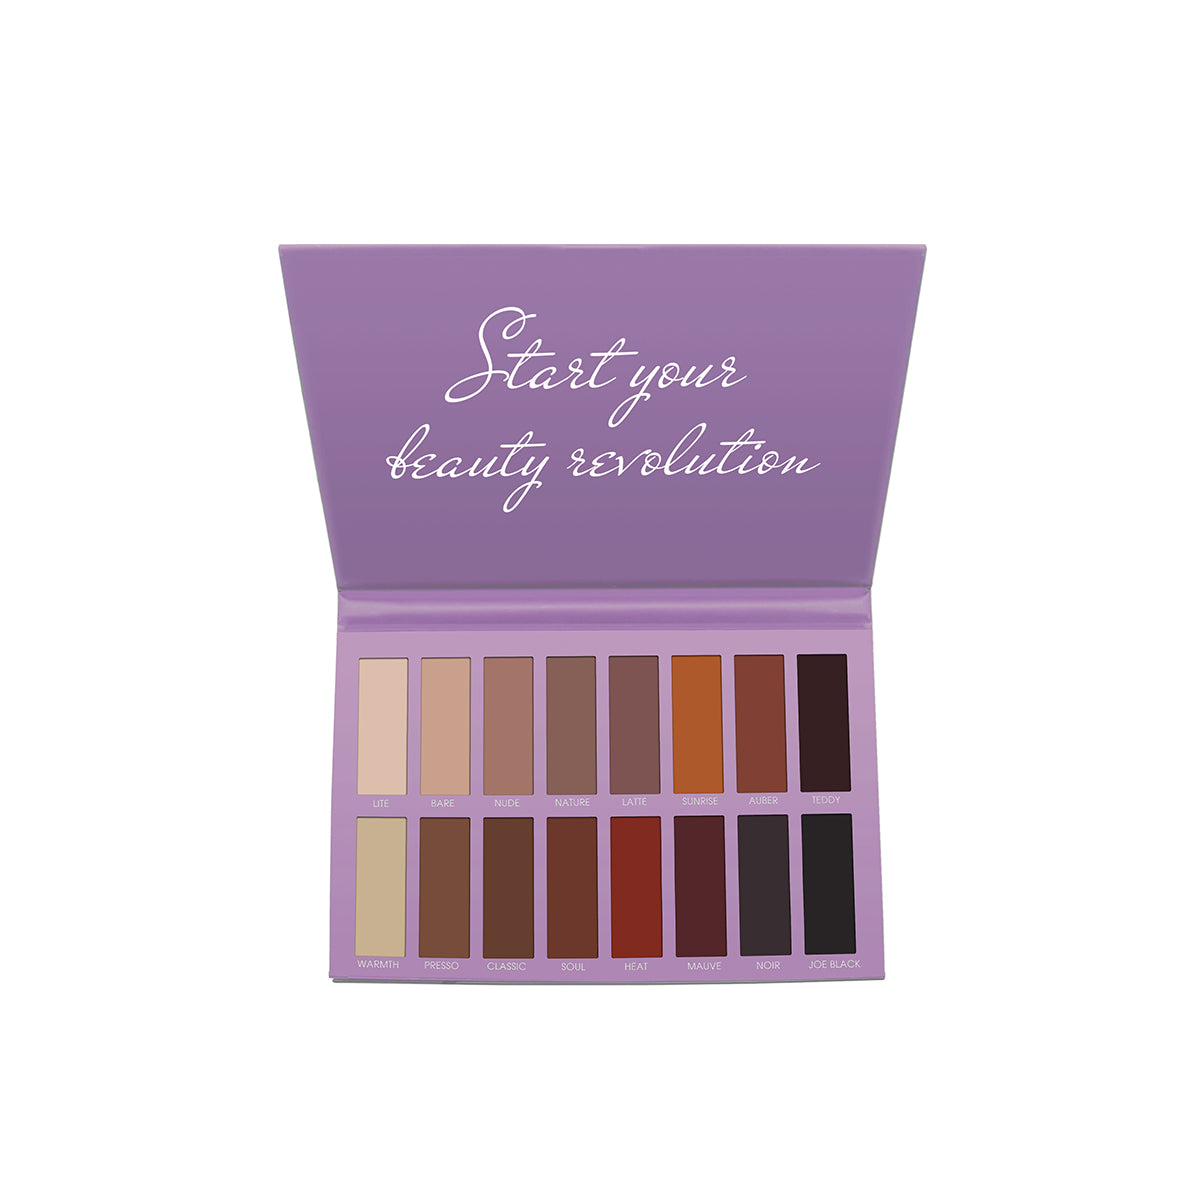 Matte Eyeshadow Palette from Lamora Beauty